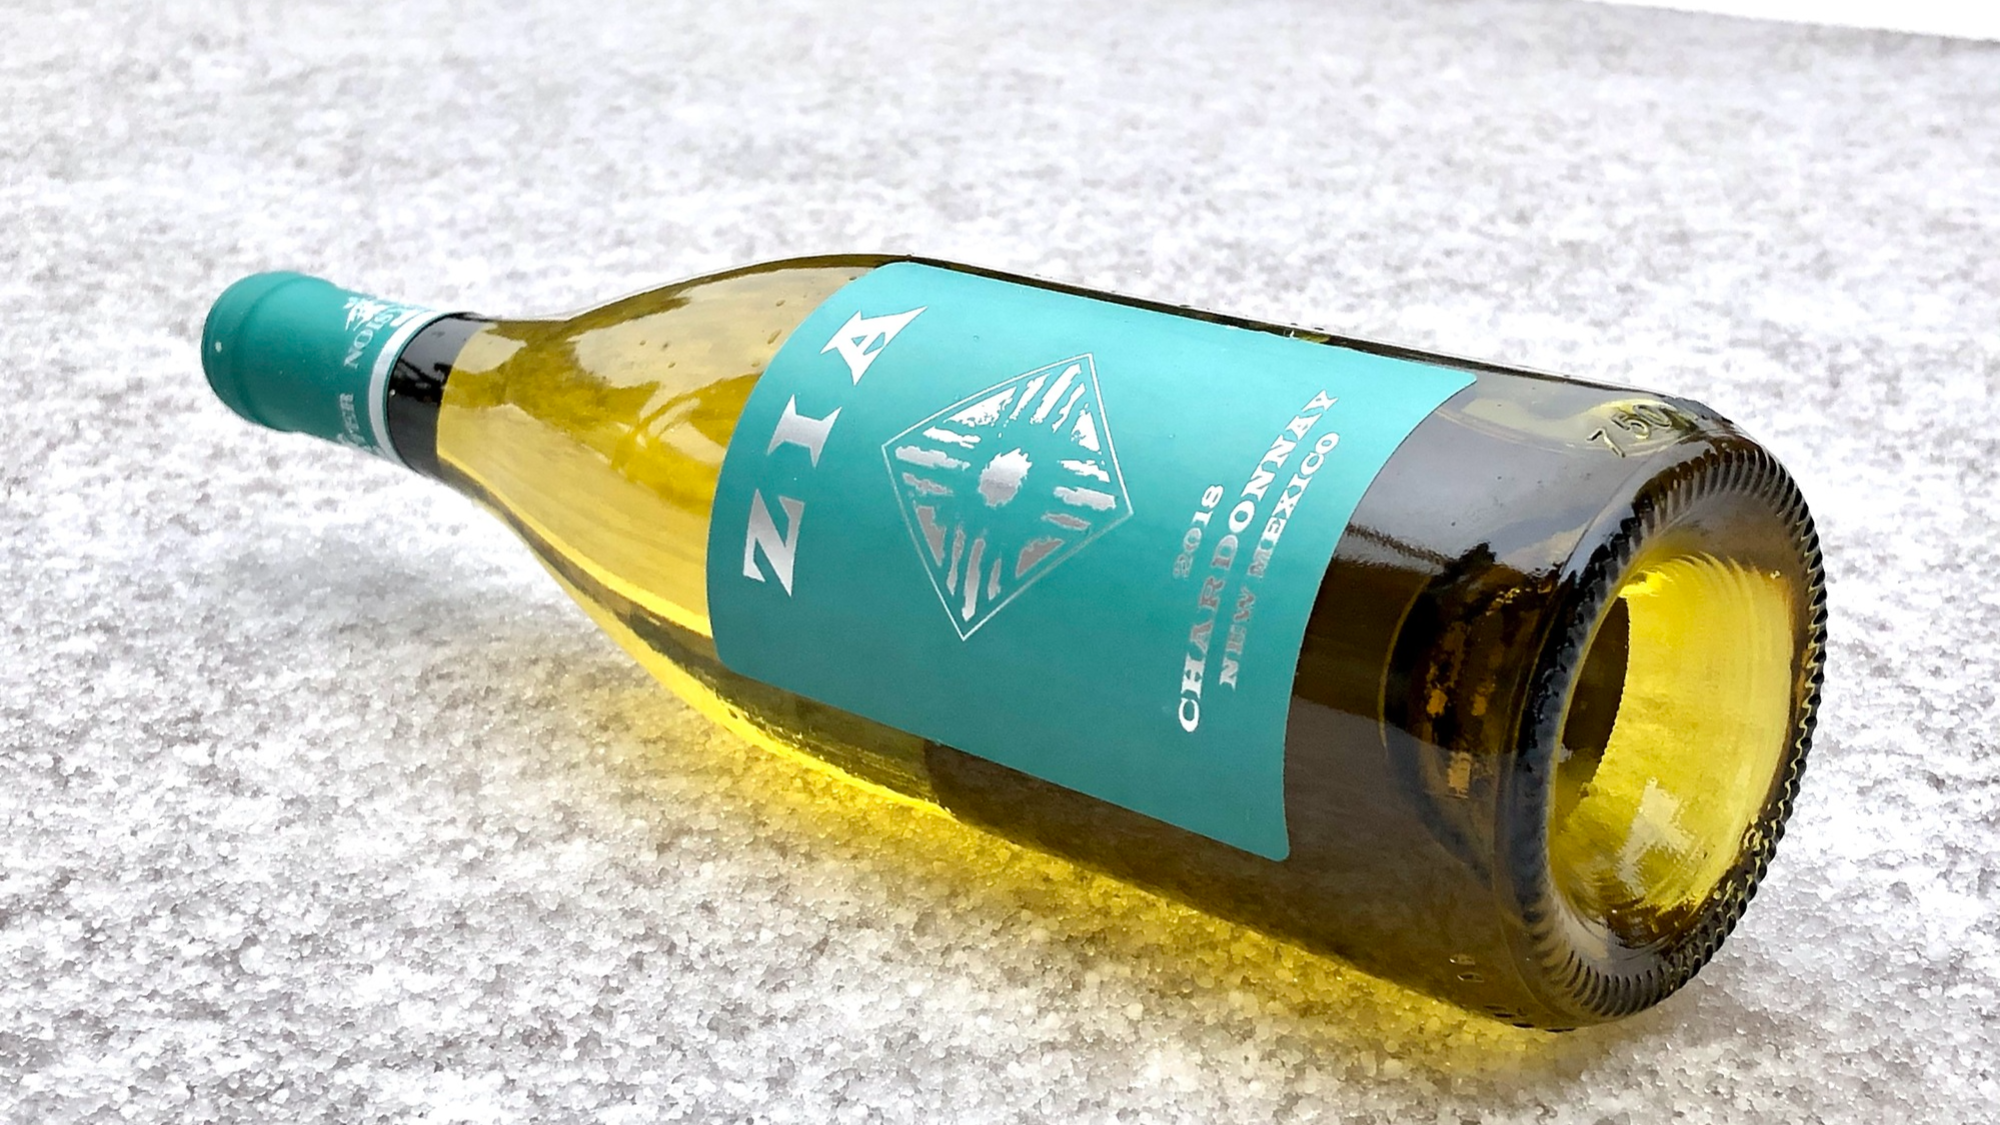 Noisy Water Winery's 2018 Zia Chardonnay on a bed of snow